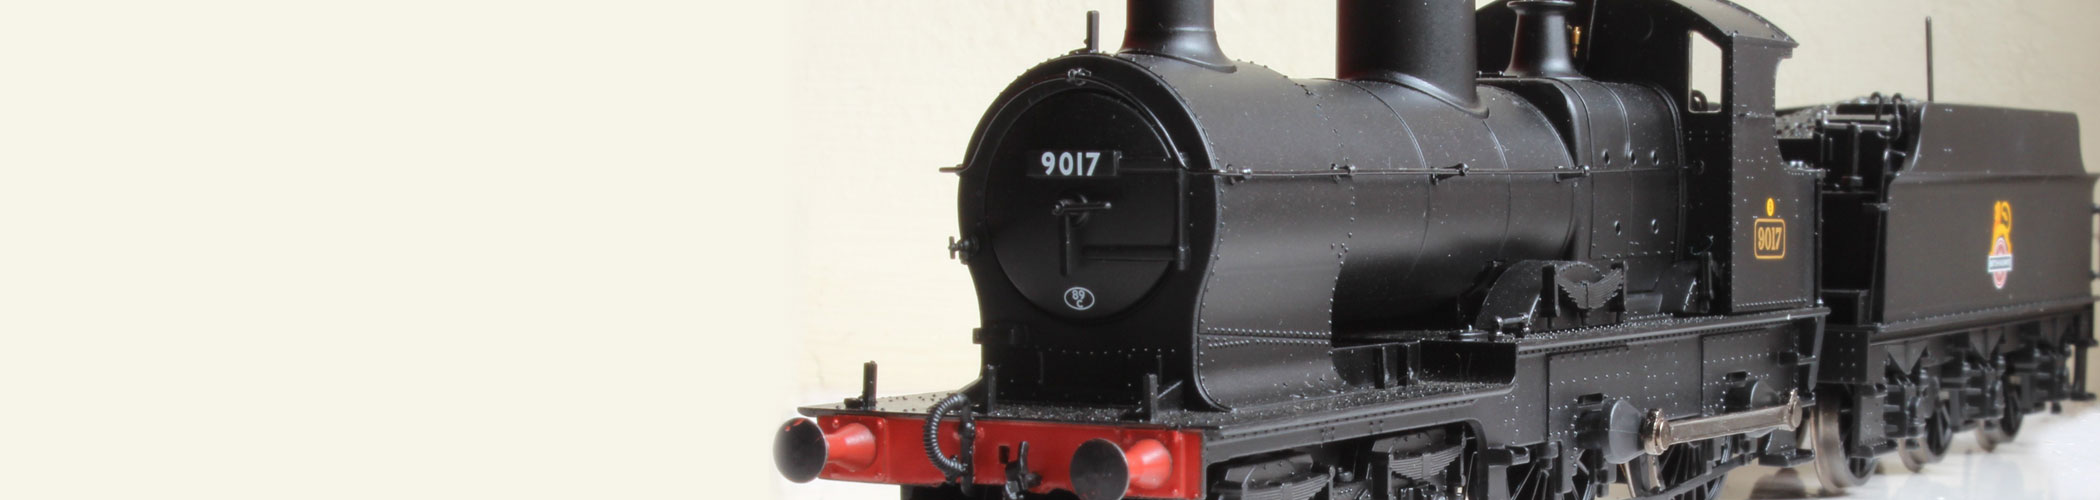 Bachmann Locomotives - View our range of Bachmann Diesel and Steam Locomotives, Coaches and Wagons